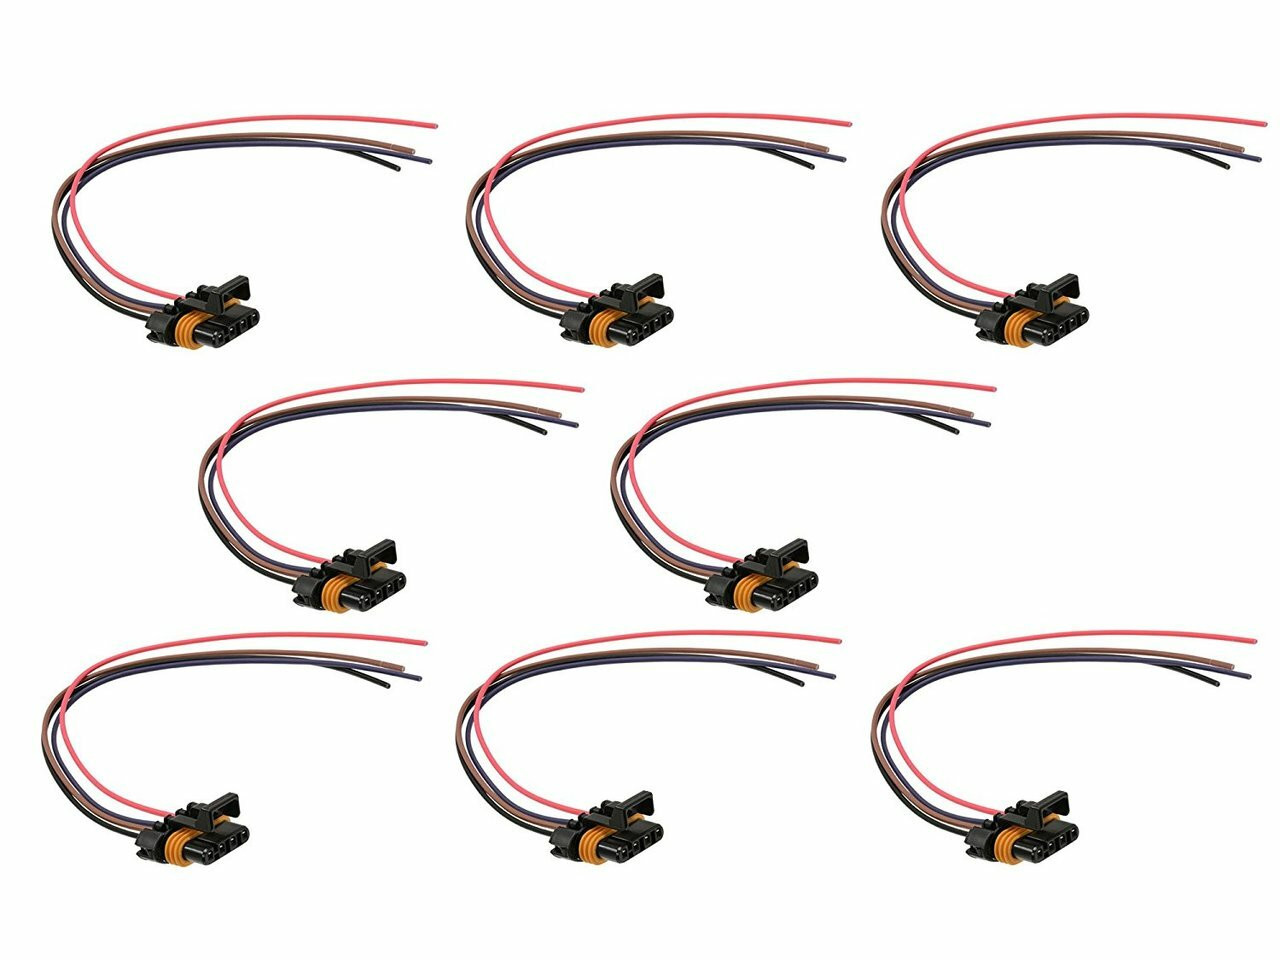 Ignition Coil Wiring Harness Pigtail Connector For Ls1 Ls6 Gm Camaro on obd2 to obd1 jumper harness, gm wiring alternator, gm wiring connectors, gm alternator harness, radio harness, gm wiring gauge,